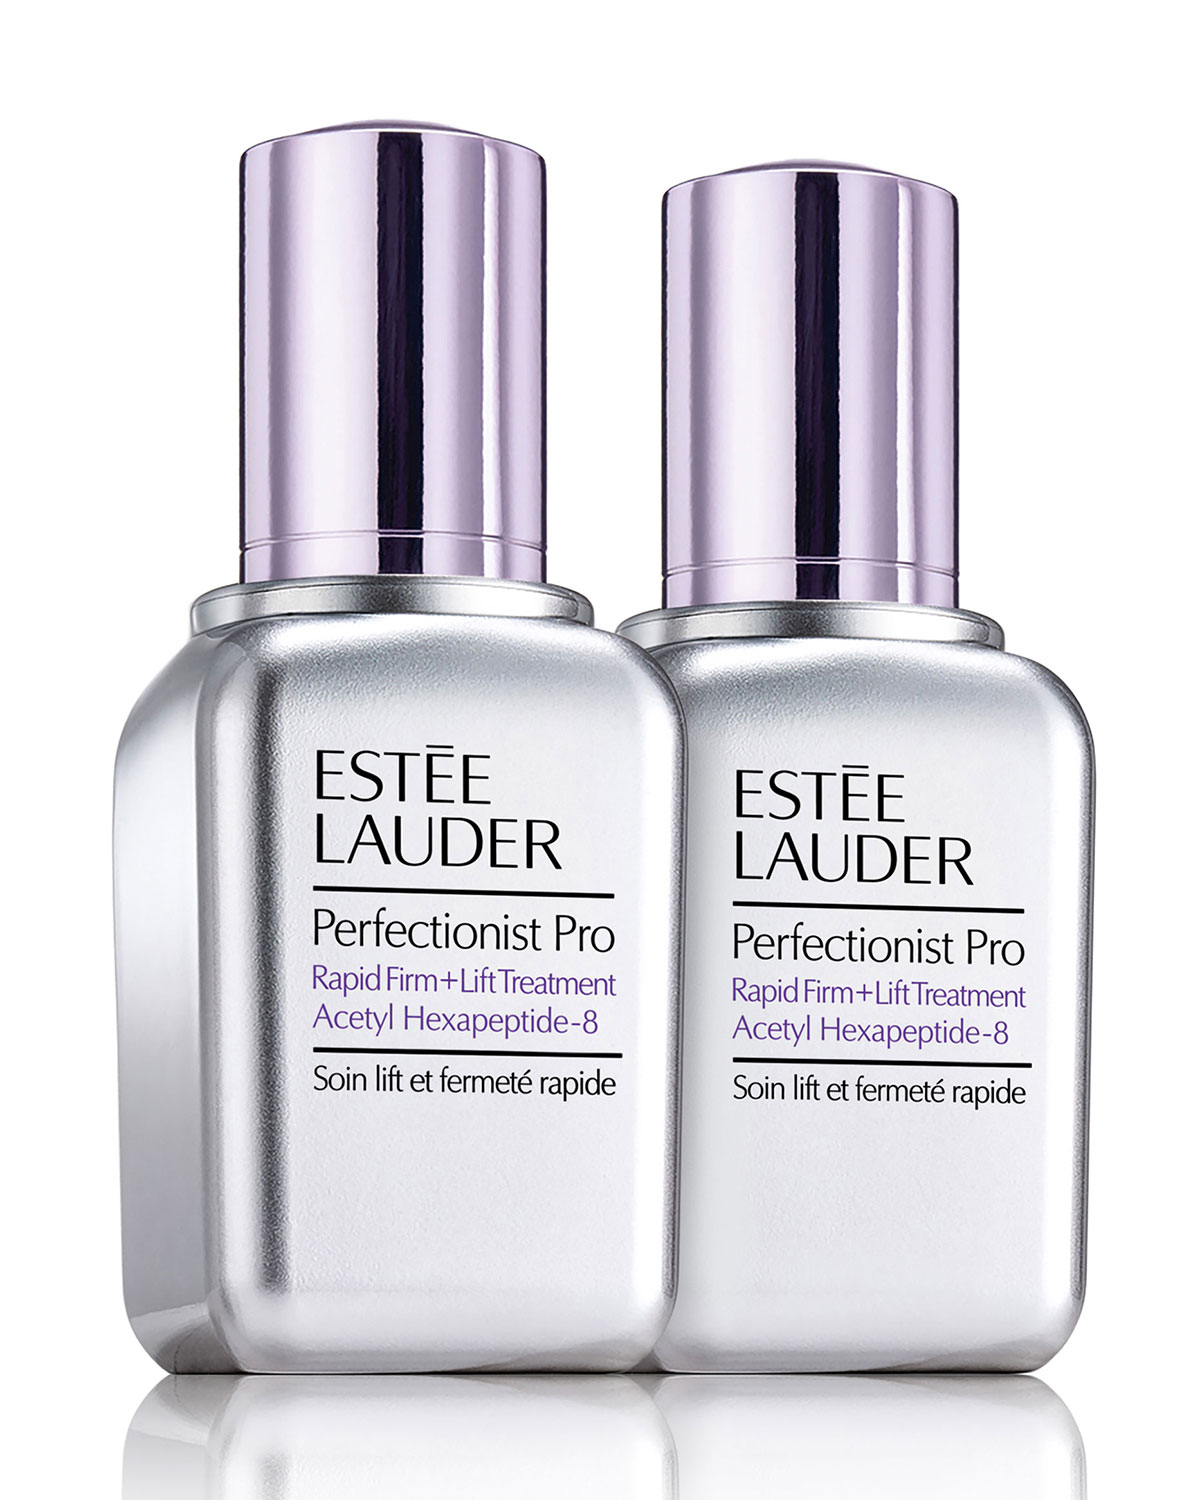 Estee LauderPerfectionist Pro Rapid Firm + Lift Treatment Duo ($216 Value)